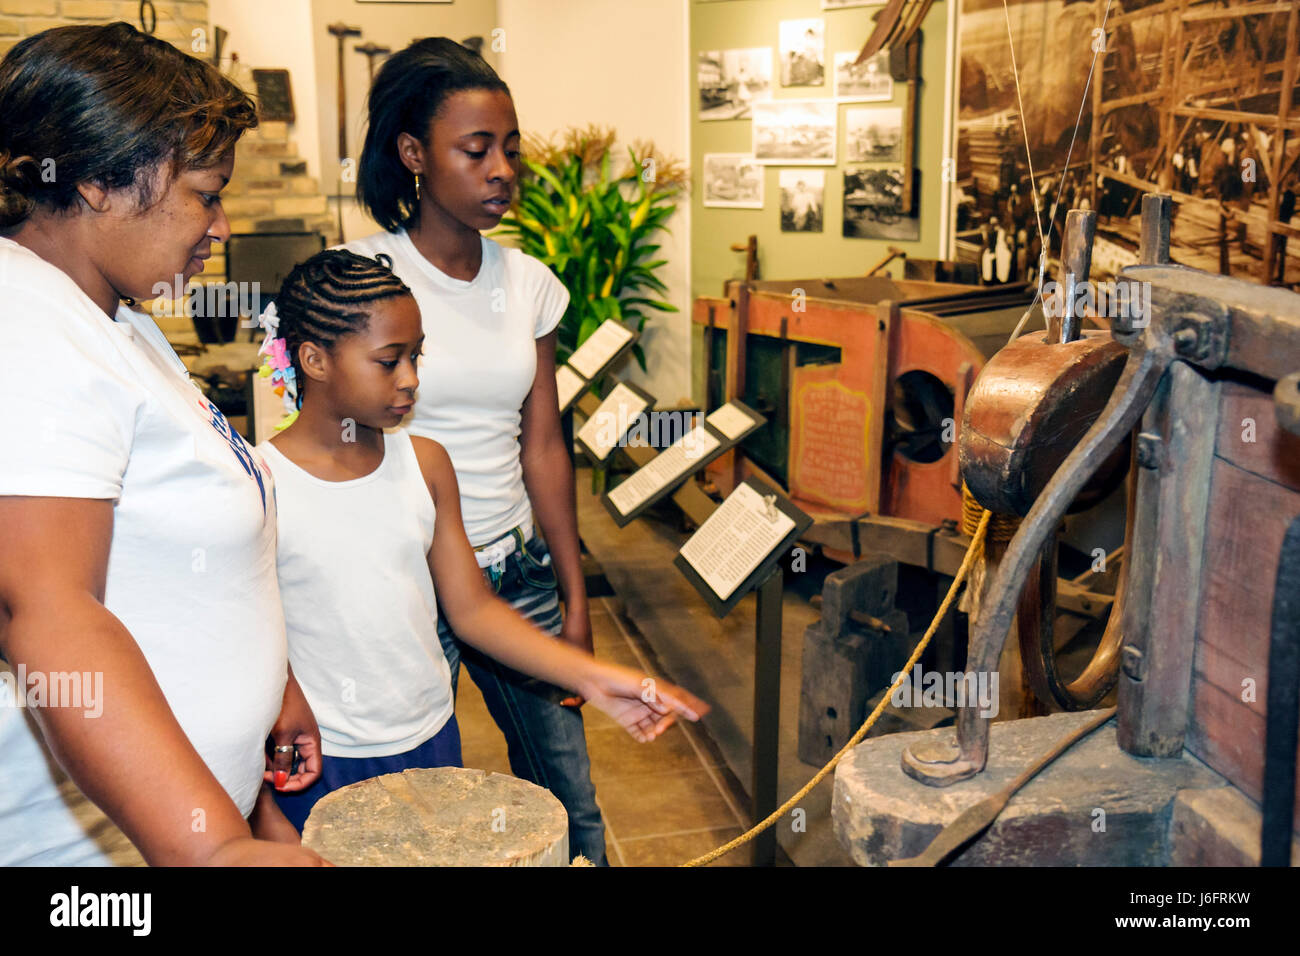 Wisconsin Kenosha Simmons Island Kenosha History Center Yesteryear Gallery Black woman girl teen mother child family Stock Photo